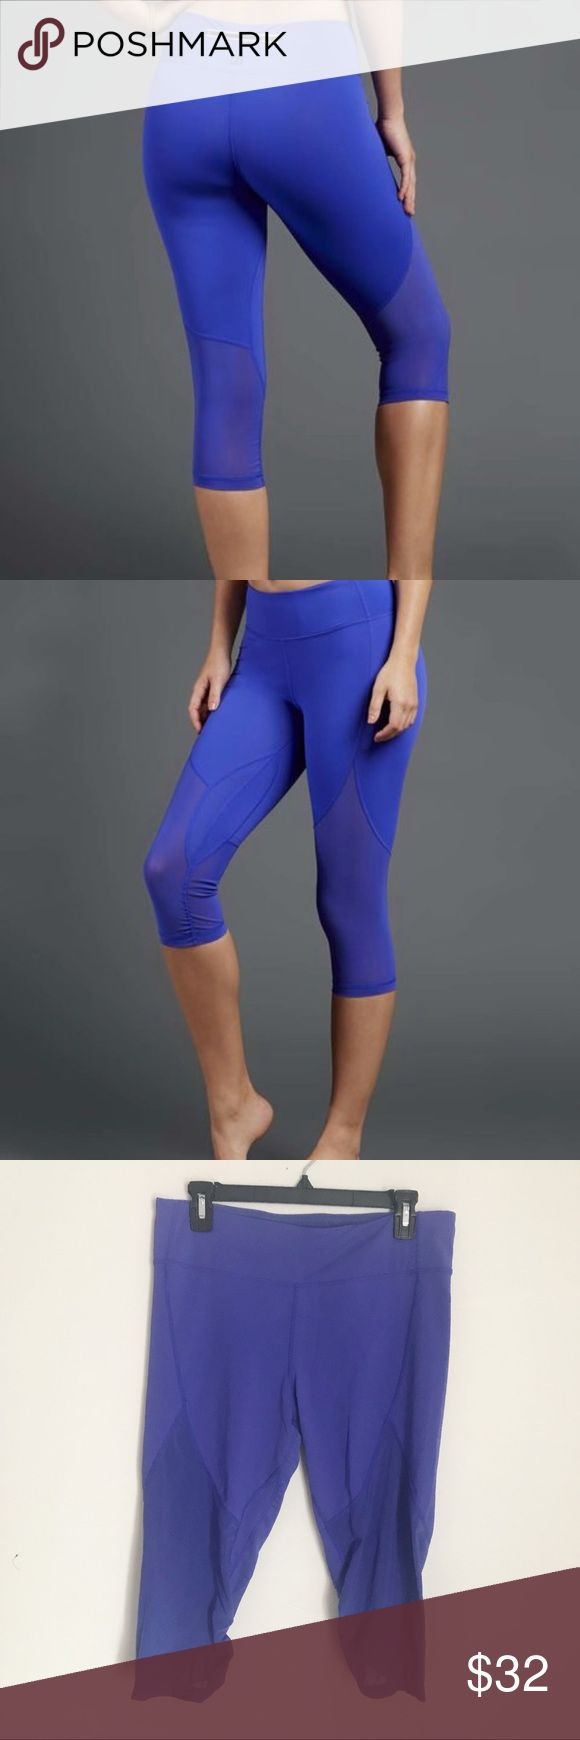 Royal Blue Mesh-Contrast Capri Leggings XL Hit the track or the yoga mat with confidence in these breathable, stretch-blend leggings that conform to your curves to keep you comfortable whether you're coming up on mile five or perfecting your downward dog.  In very good condition size XL stretchable  83% nylon / 17% spandex Machine wash Imported  Retail $54 Zobha Pants Capris